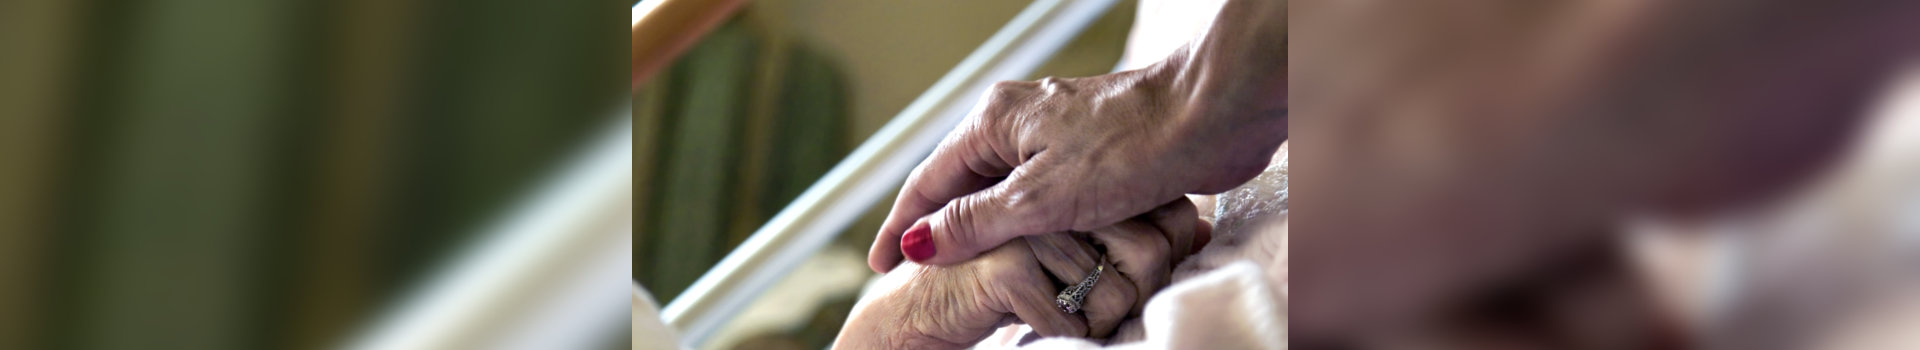 an image of caring hands